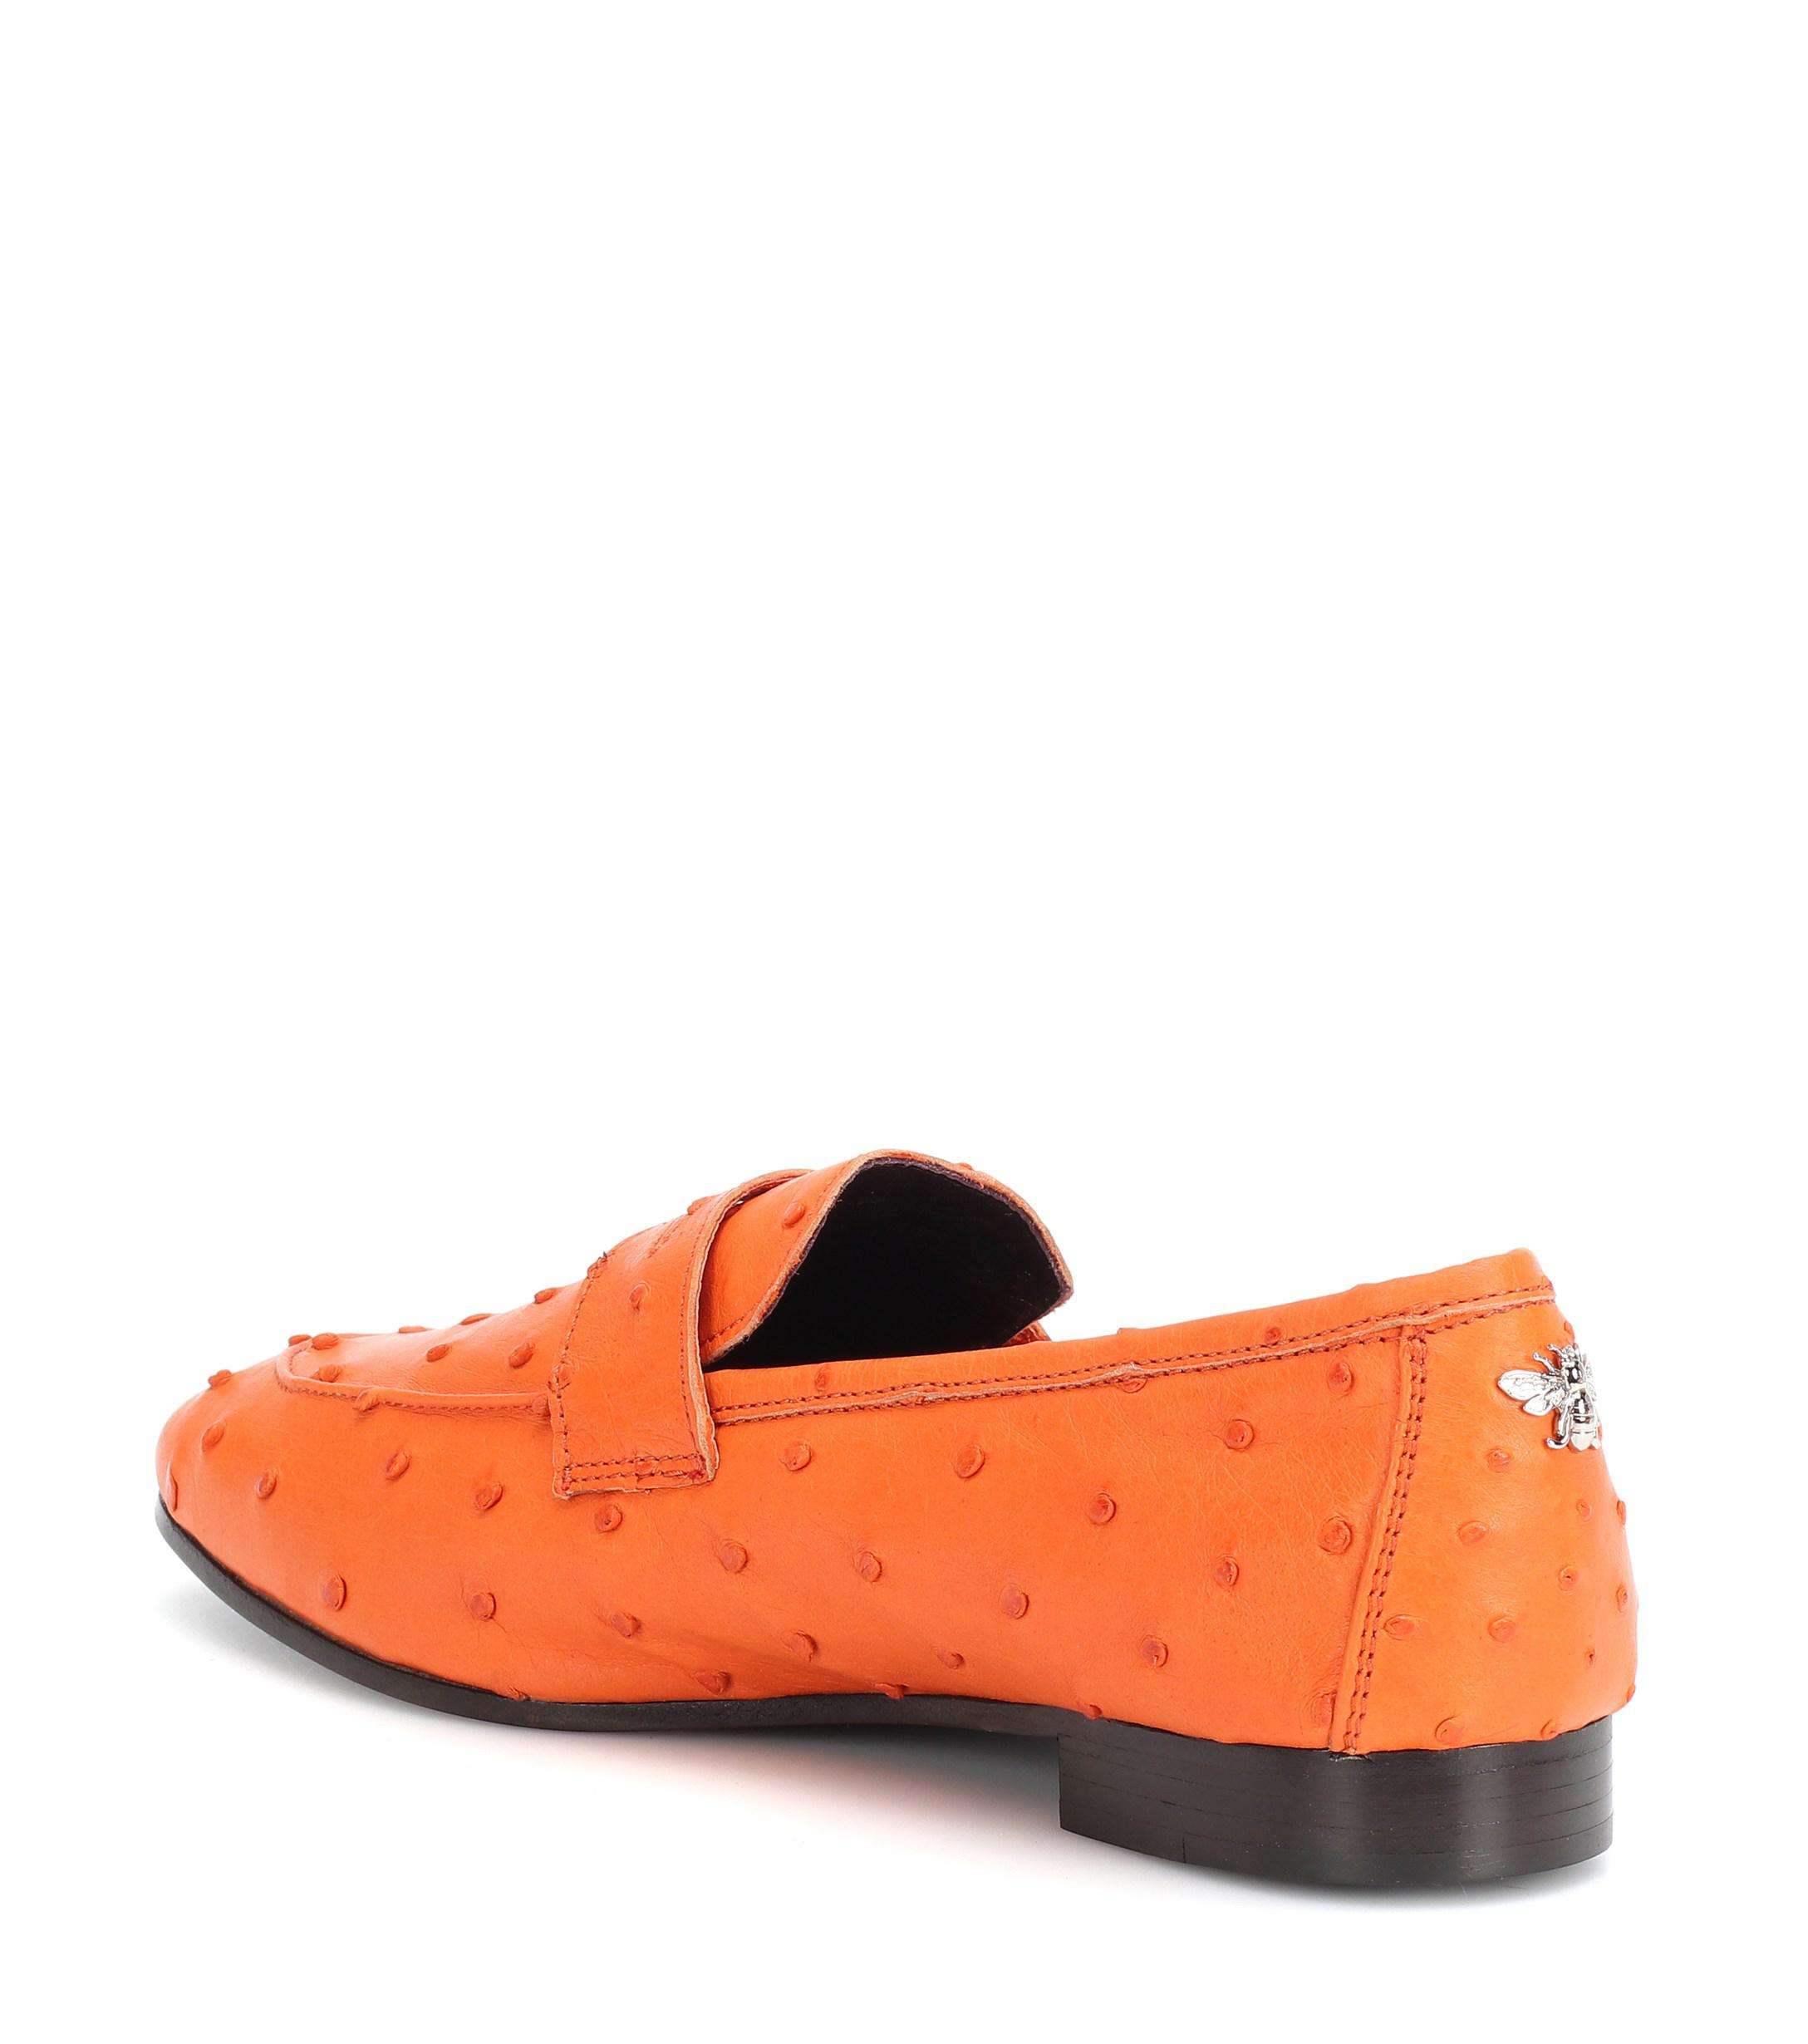 70886733e44 Bougeotte - Orange Exclusive To Mytheresa – Flaneur Ostrich Leather Loafers  - Lyst. View fullscreen